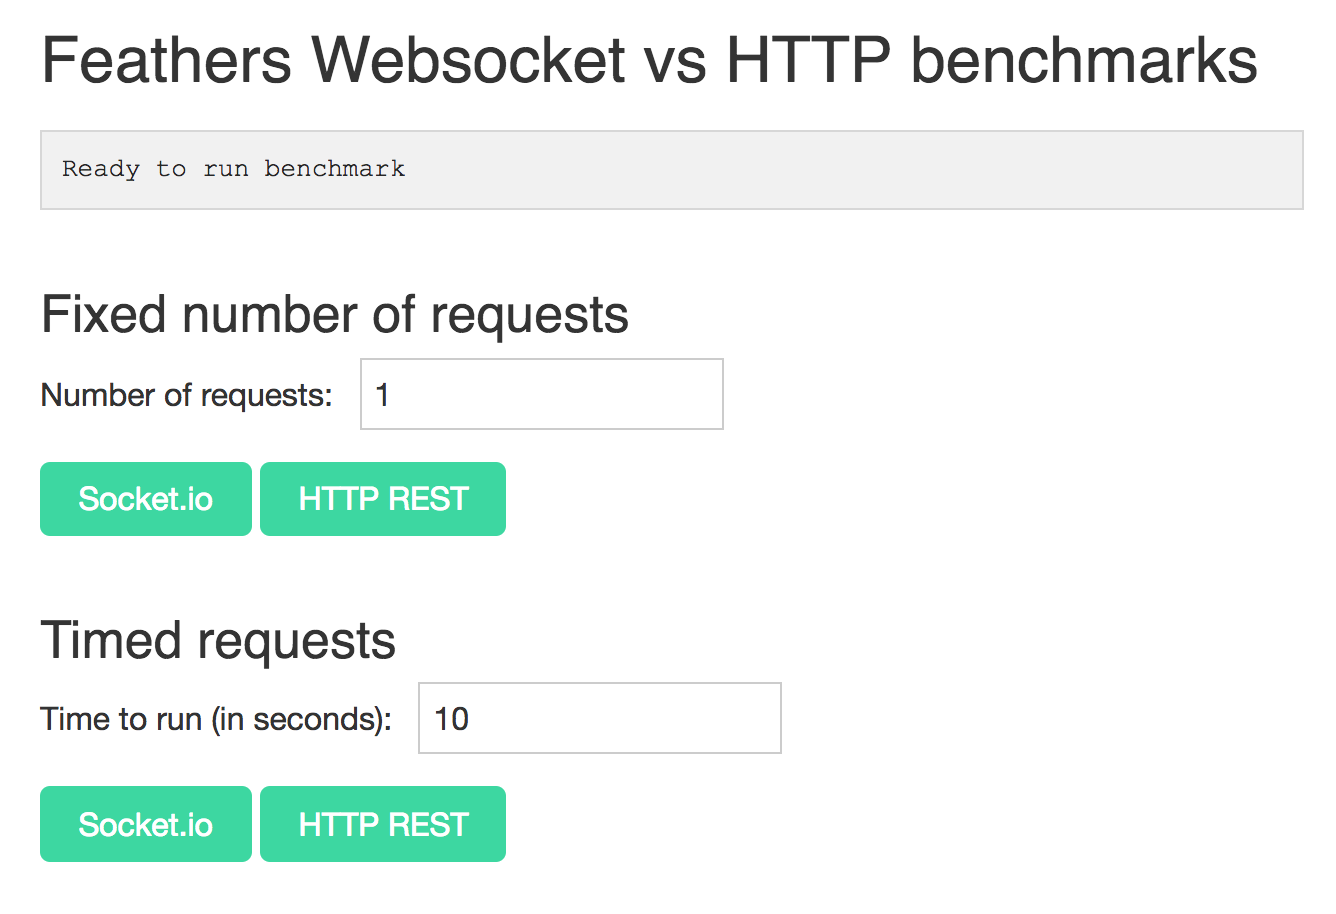 HTTP vs Websockets: A performance comparison - The Feathers Flightpath